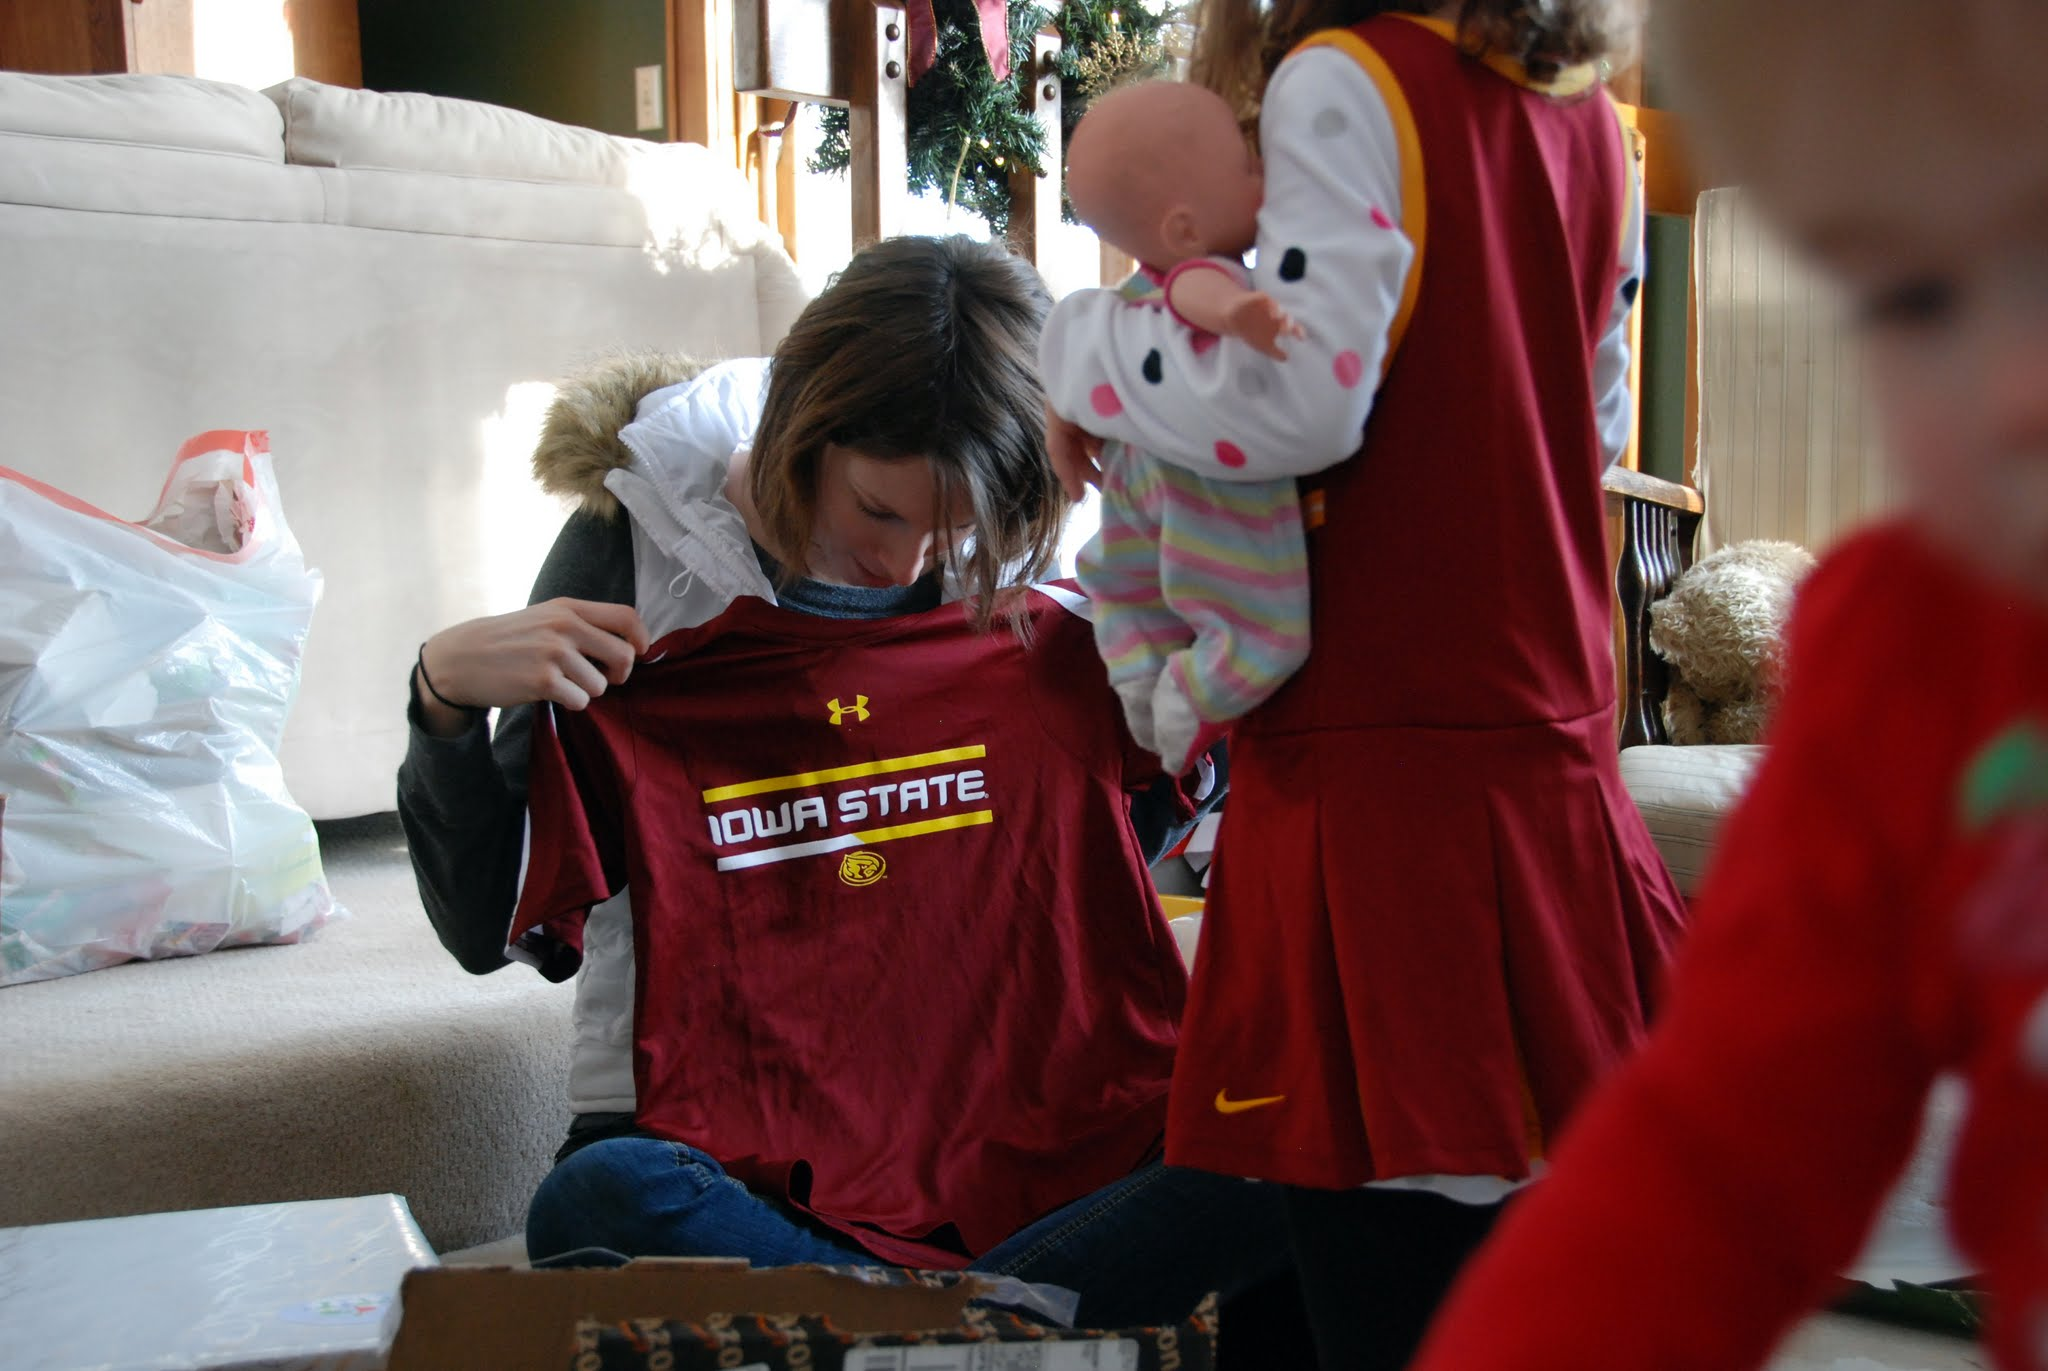 Photo: You got a new Cyclone shirt too!